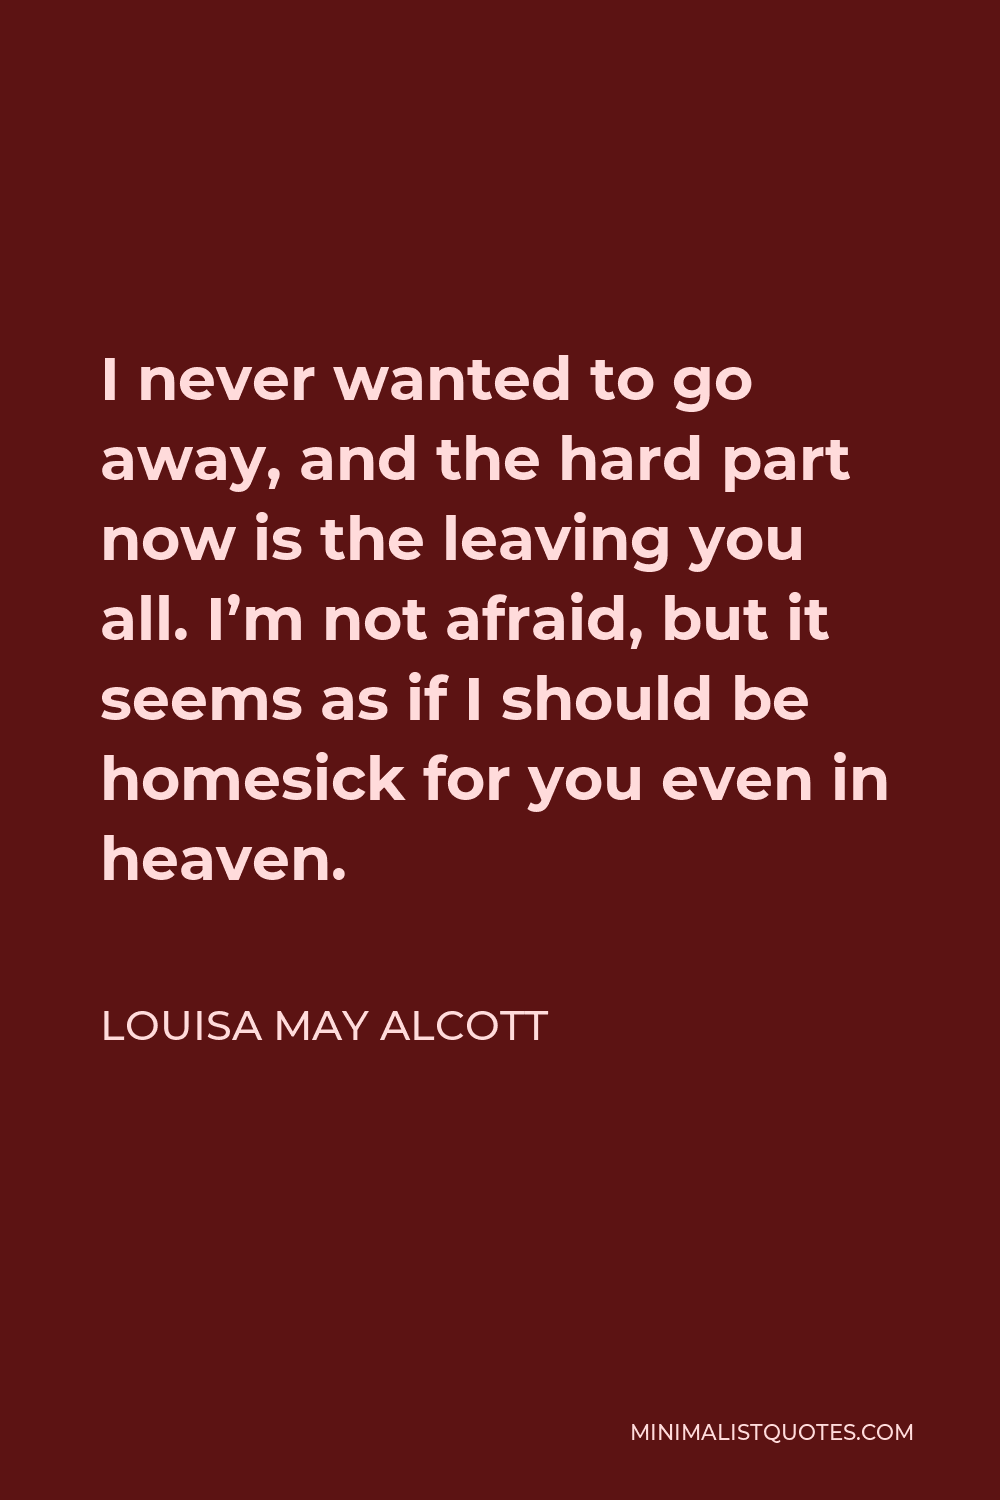 Louisa May Alcott Quote - I never wanted to go away, and the hard part now is the leaving you all. I'm not afraid, but it seems as if I should be homesick for you even in heaven.